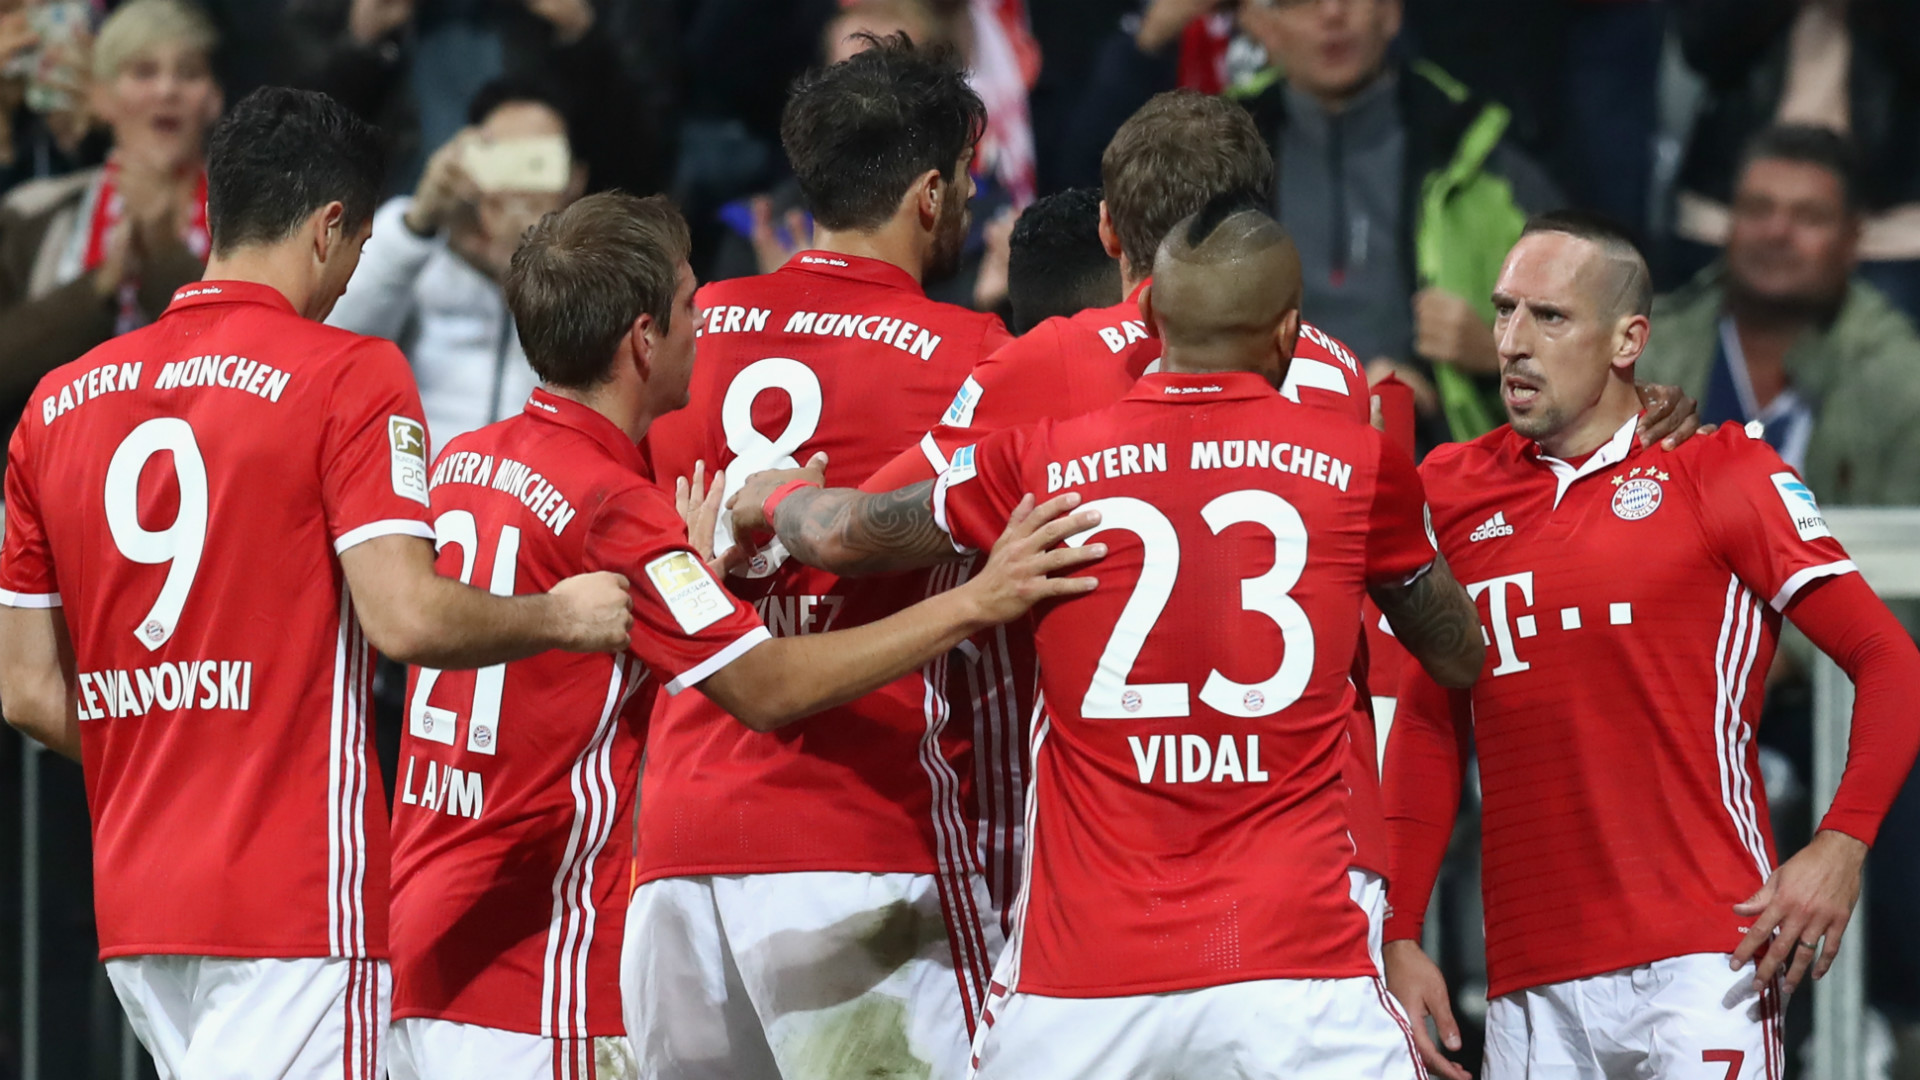 Atletico Madrid v Bayern Munich Betting: Low-key opening expected